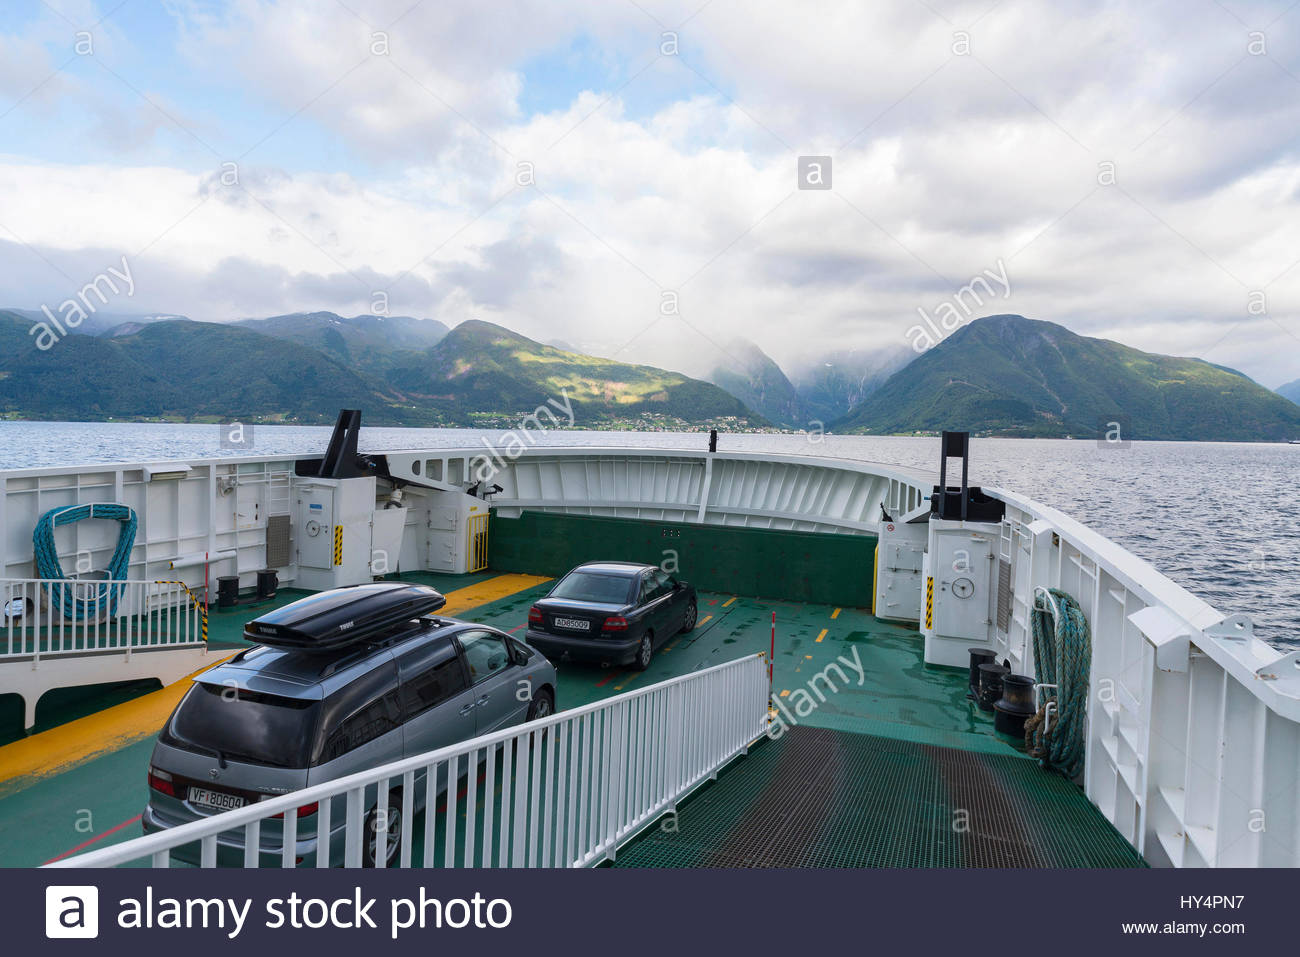 Car ferries sognefjord norway - Ferry Across The Sognefjord In Vangsnes Norway Scandinavia Europe